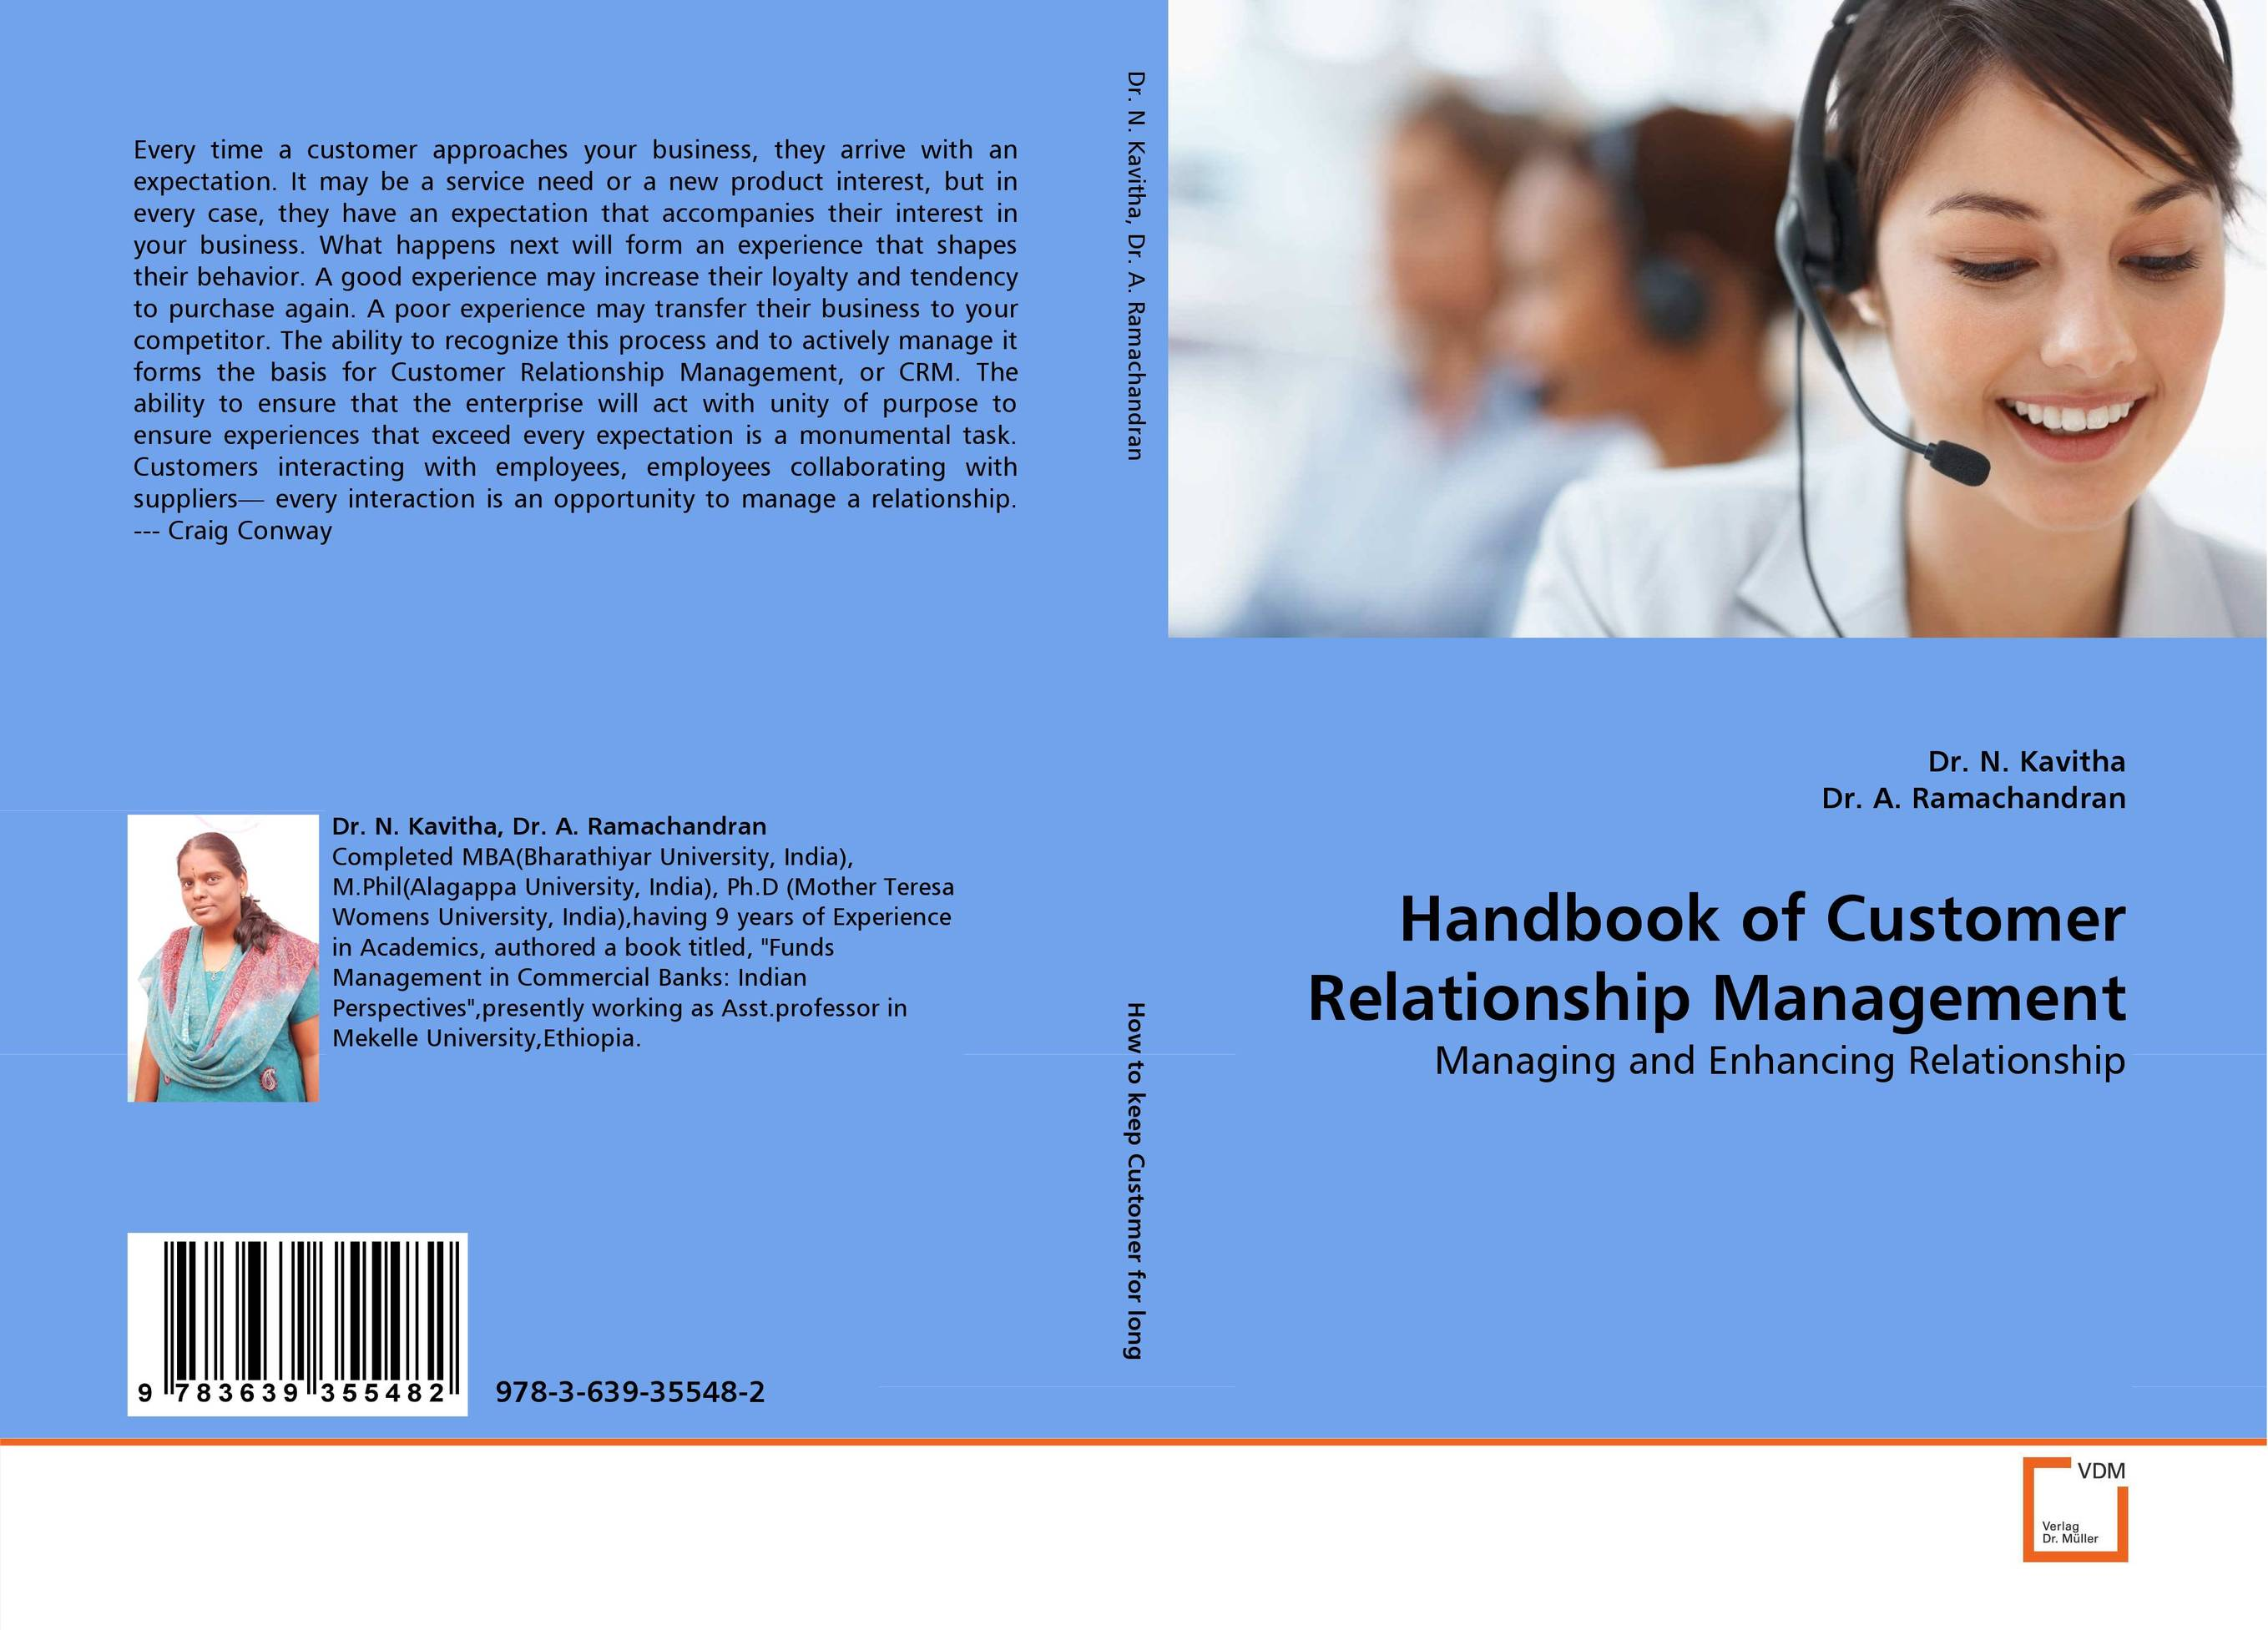 Handbook of Customer Relationship Management